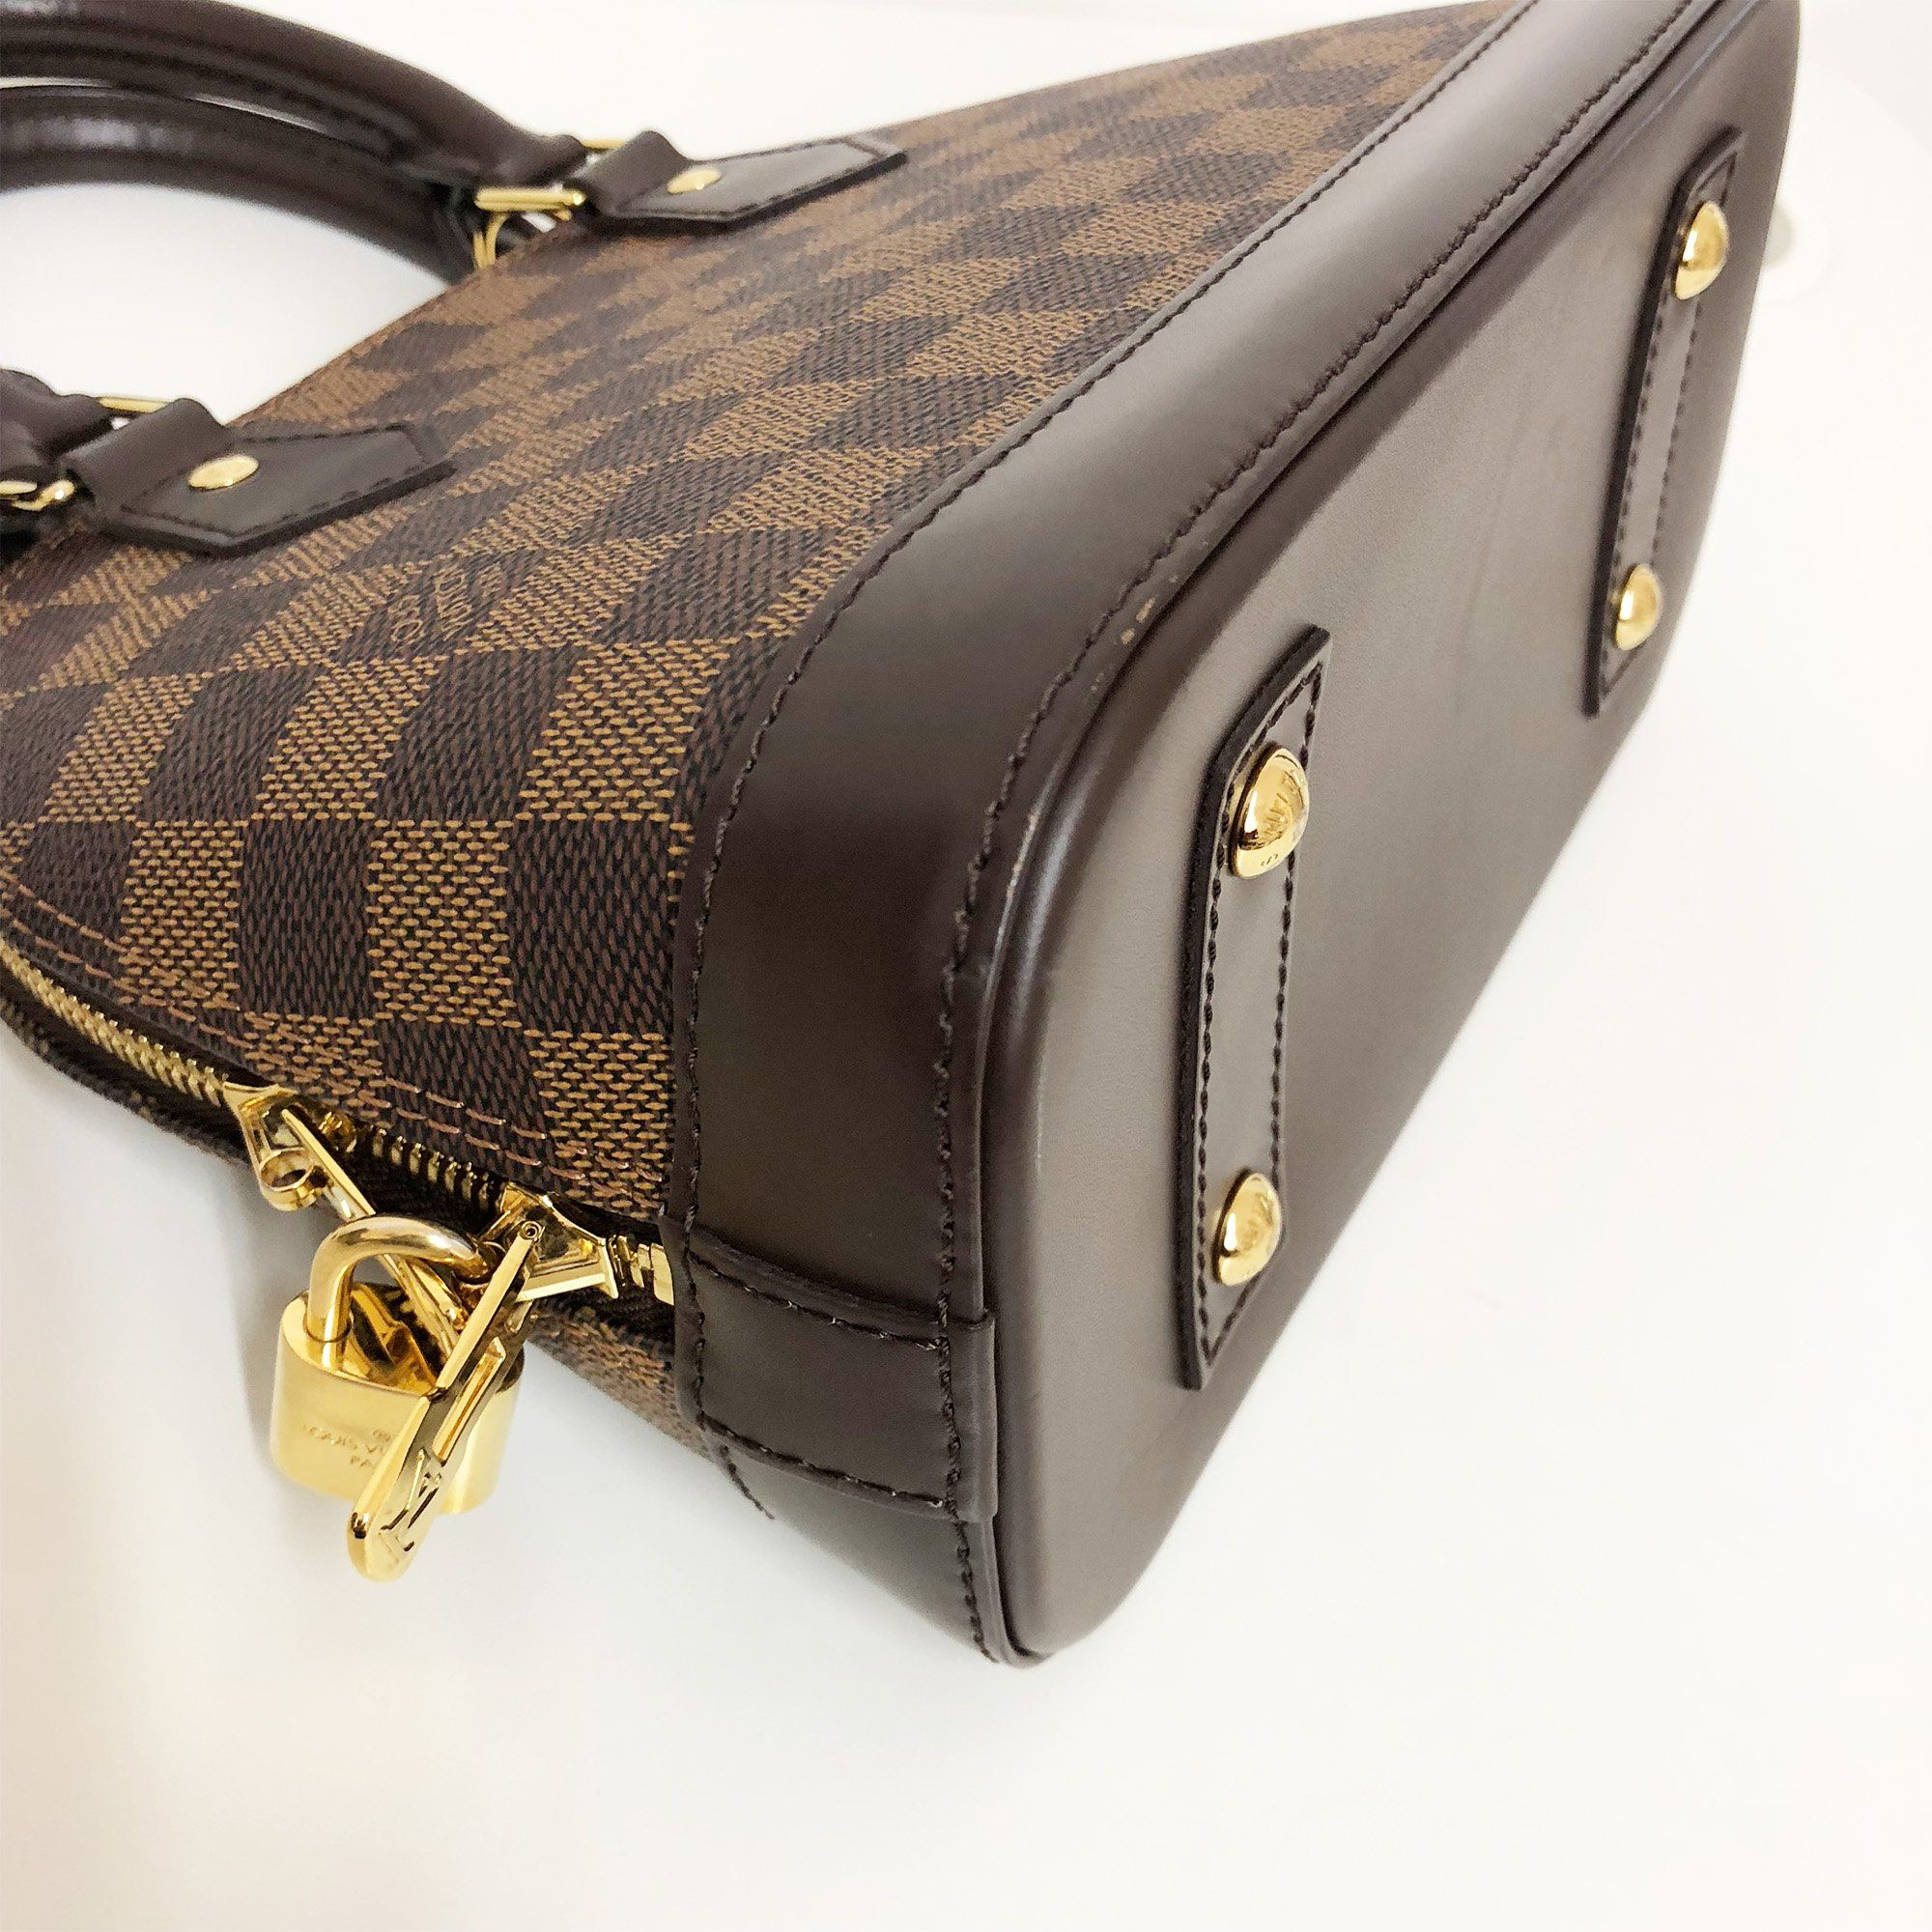 f33fd1ca15e6c item 5 Louis Vuitton LV Alma GM Hand Bag N41247 Damier Ebene Brown 4345 -Louis  Vuitton LV Alma GM Hand Bag N41247 Damier Ebene Brown 4345